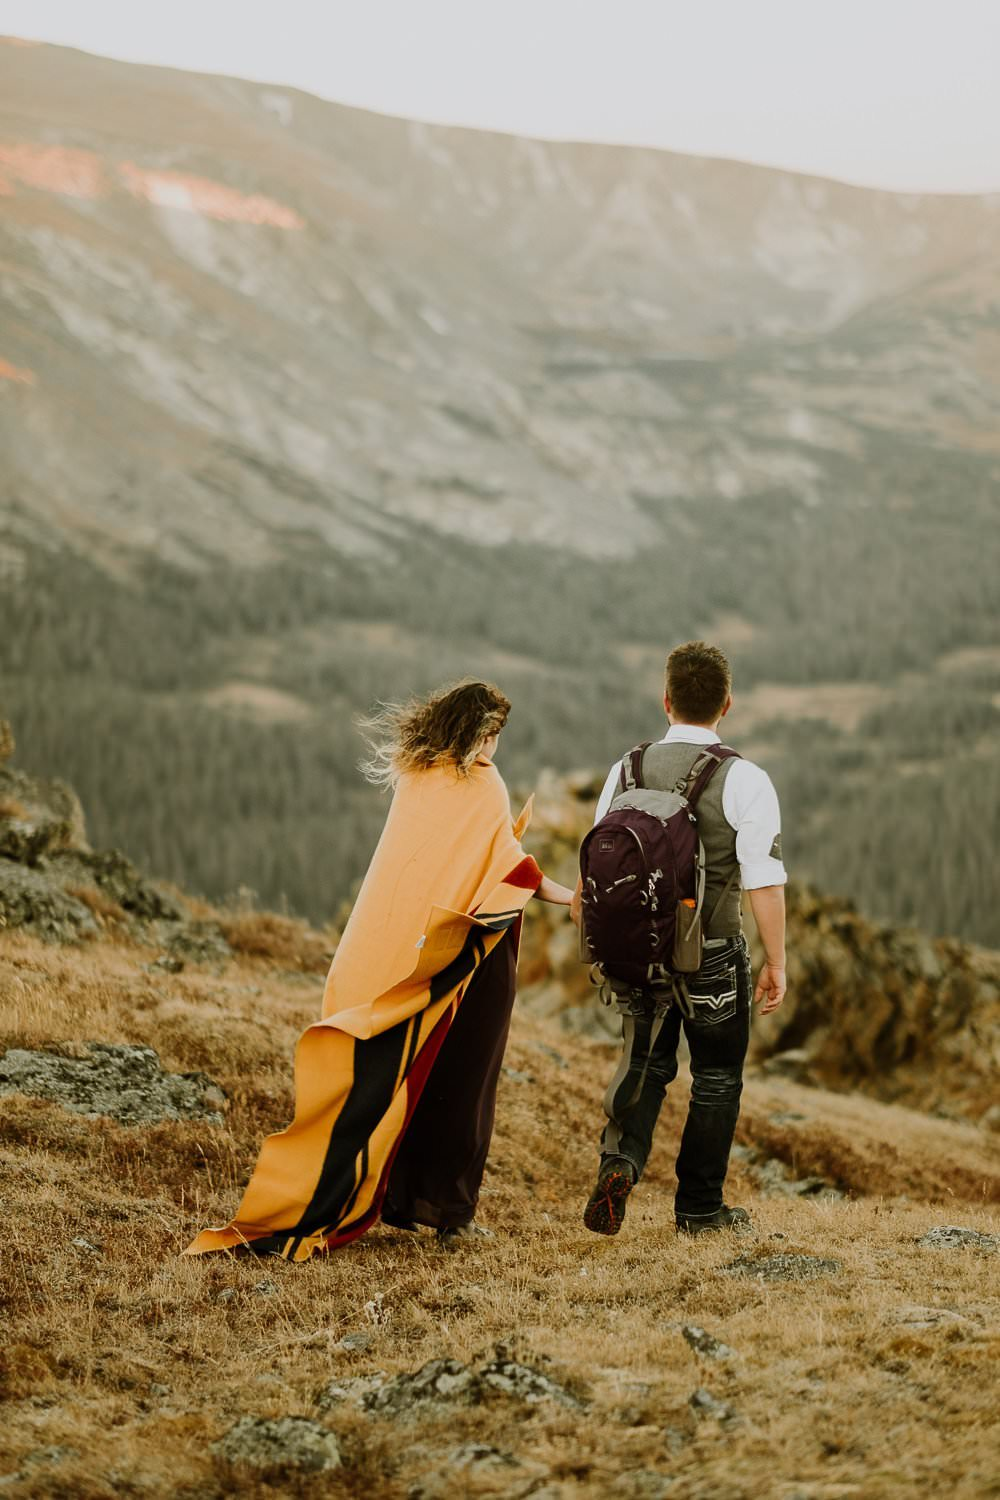 ASHLEE+LOGAN ADVENTURE HIKING SESSION IN ROCKY MOUNTAIN  NATIONAL PARK | ESTES PARK, COLORADO ADVENTURE PHOTOGRAPHER | COLORADO ADVENTURE PHOTOGRAPHY